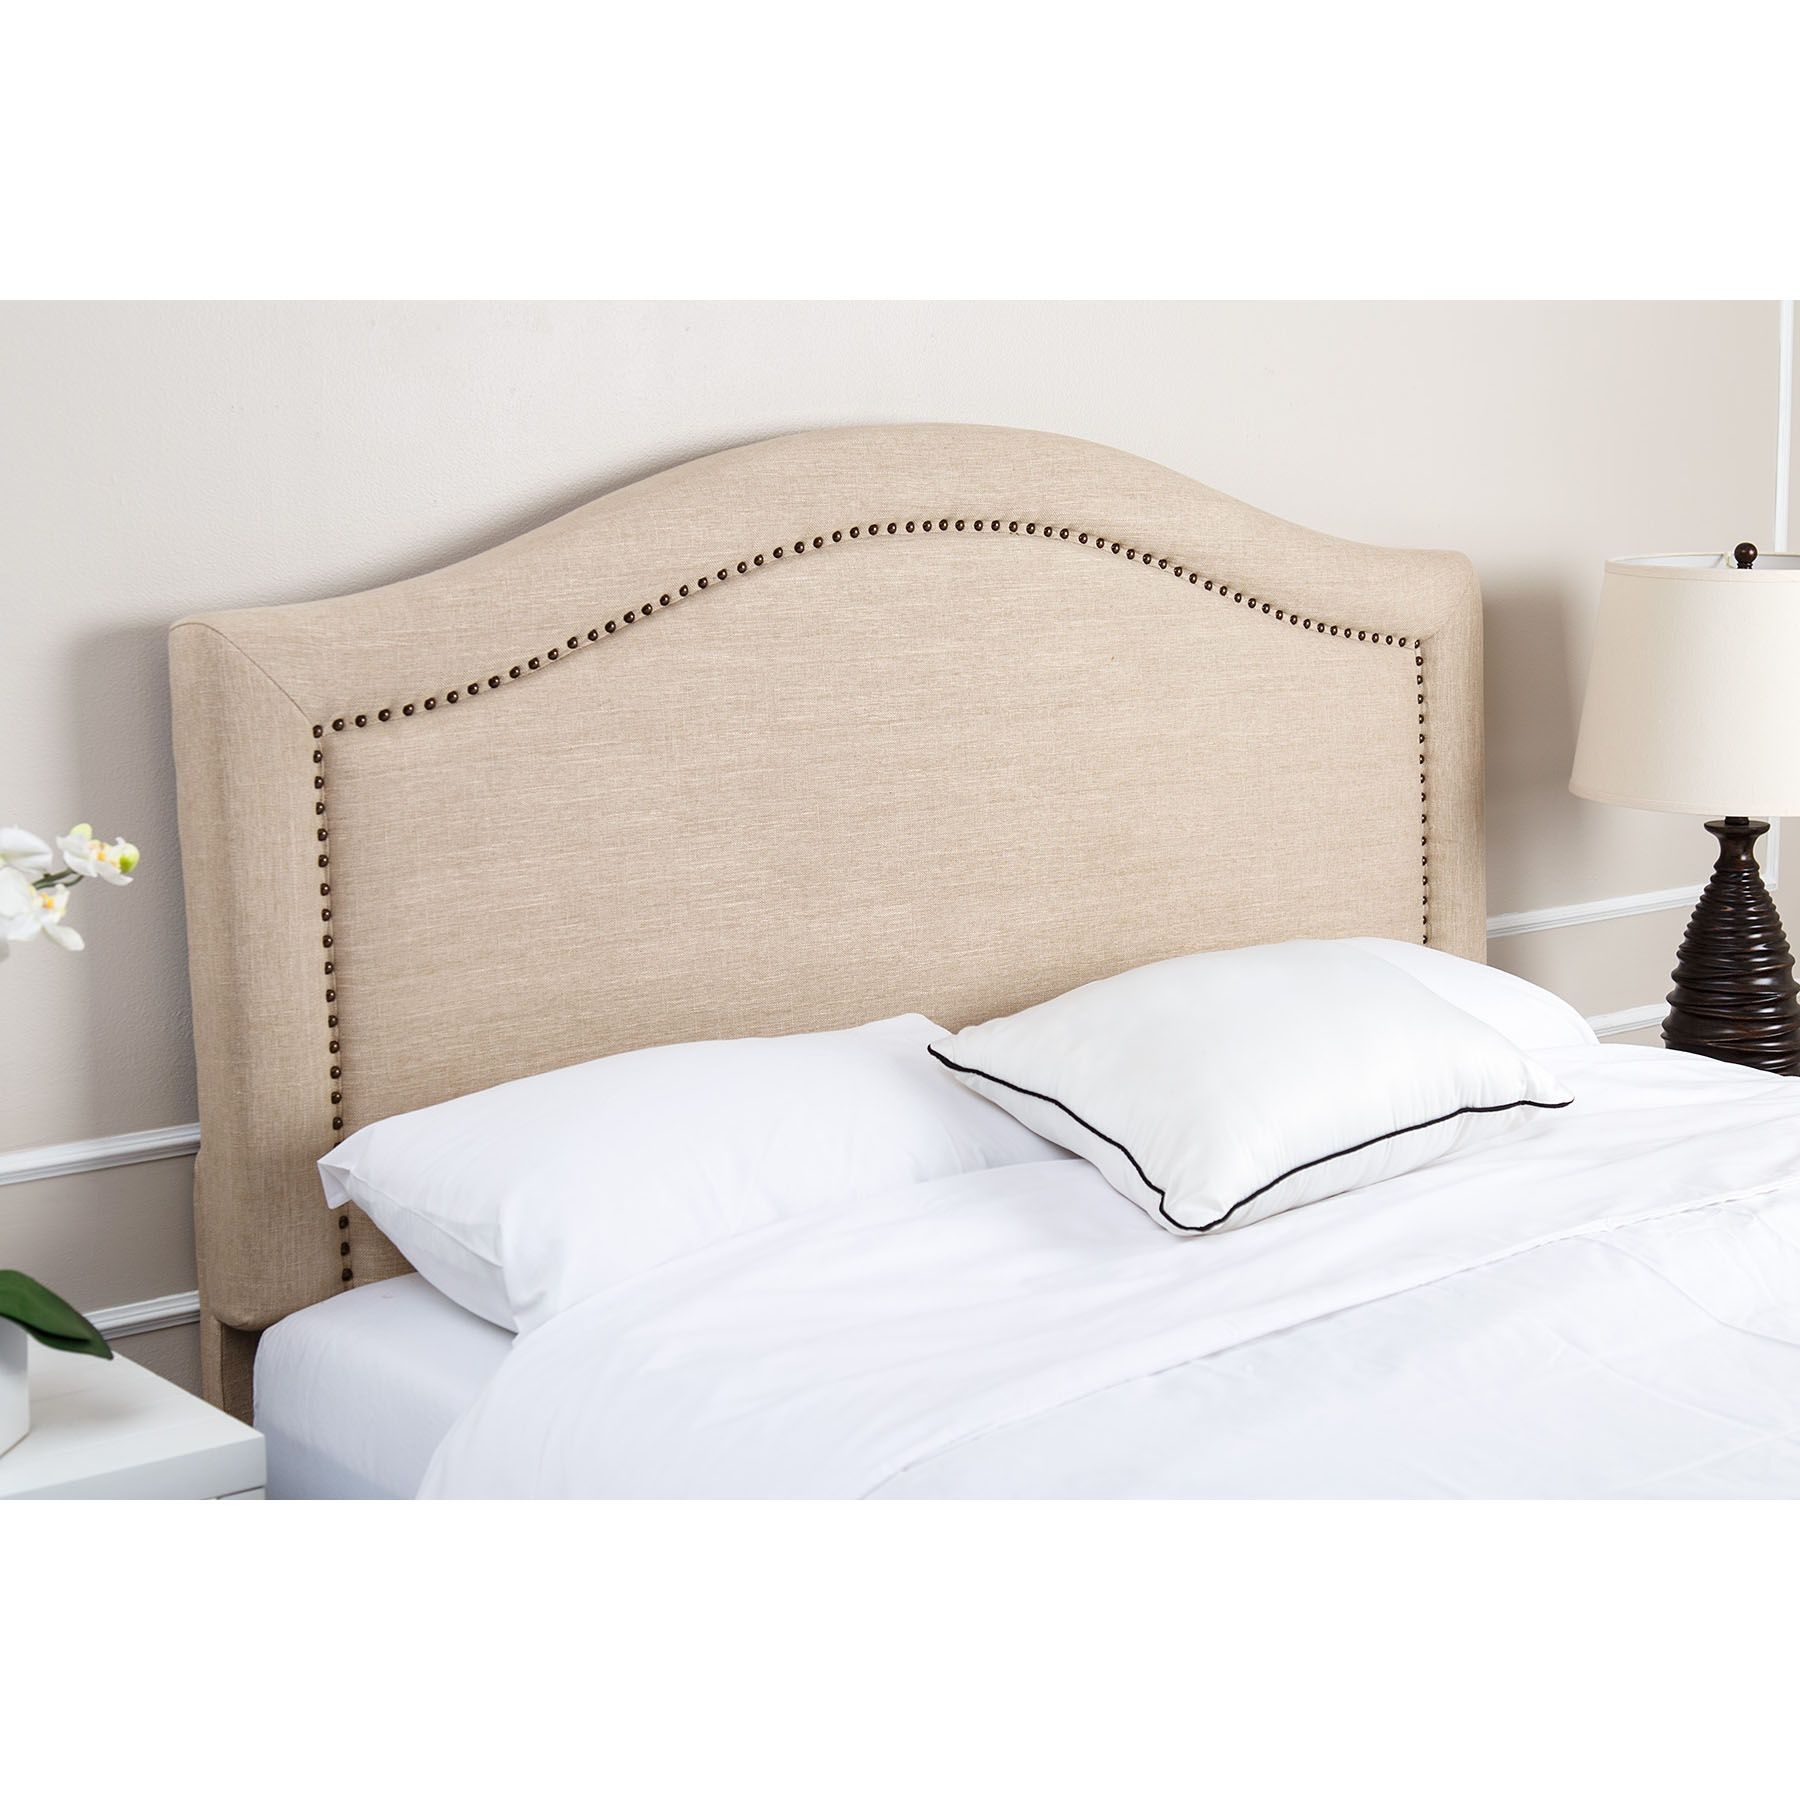 Customer Favorite Abbyson Living Ramsay King California King Size Headboard Wheat Accuweather Shop